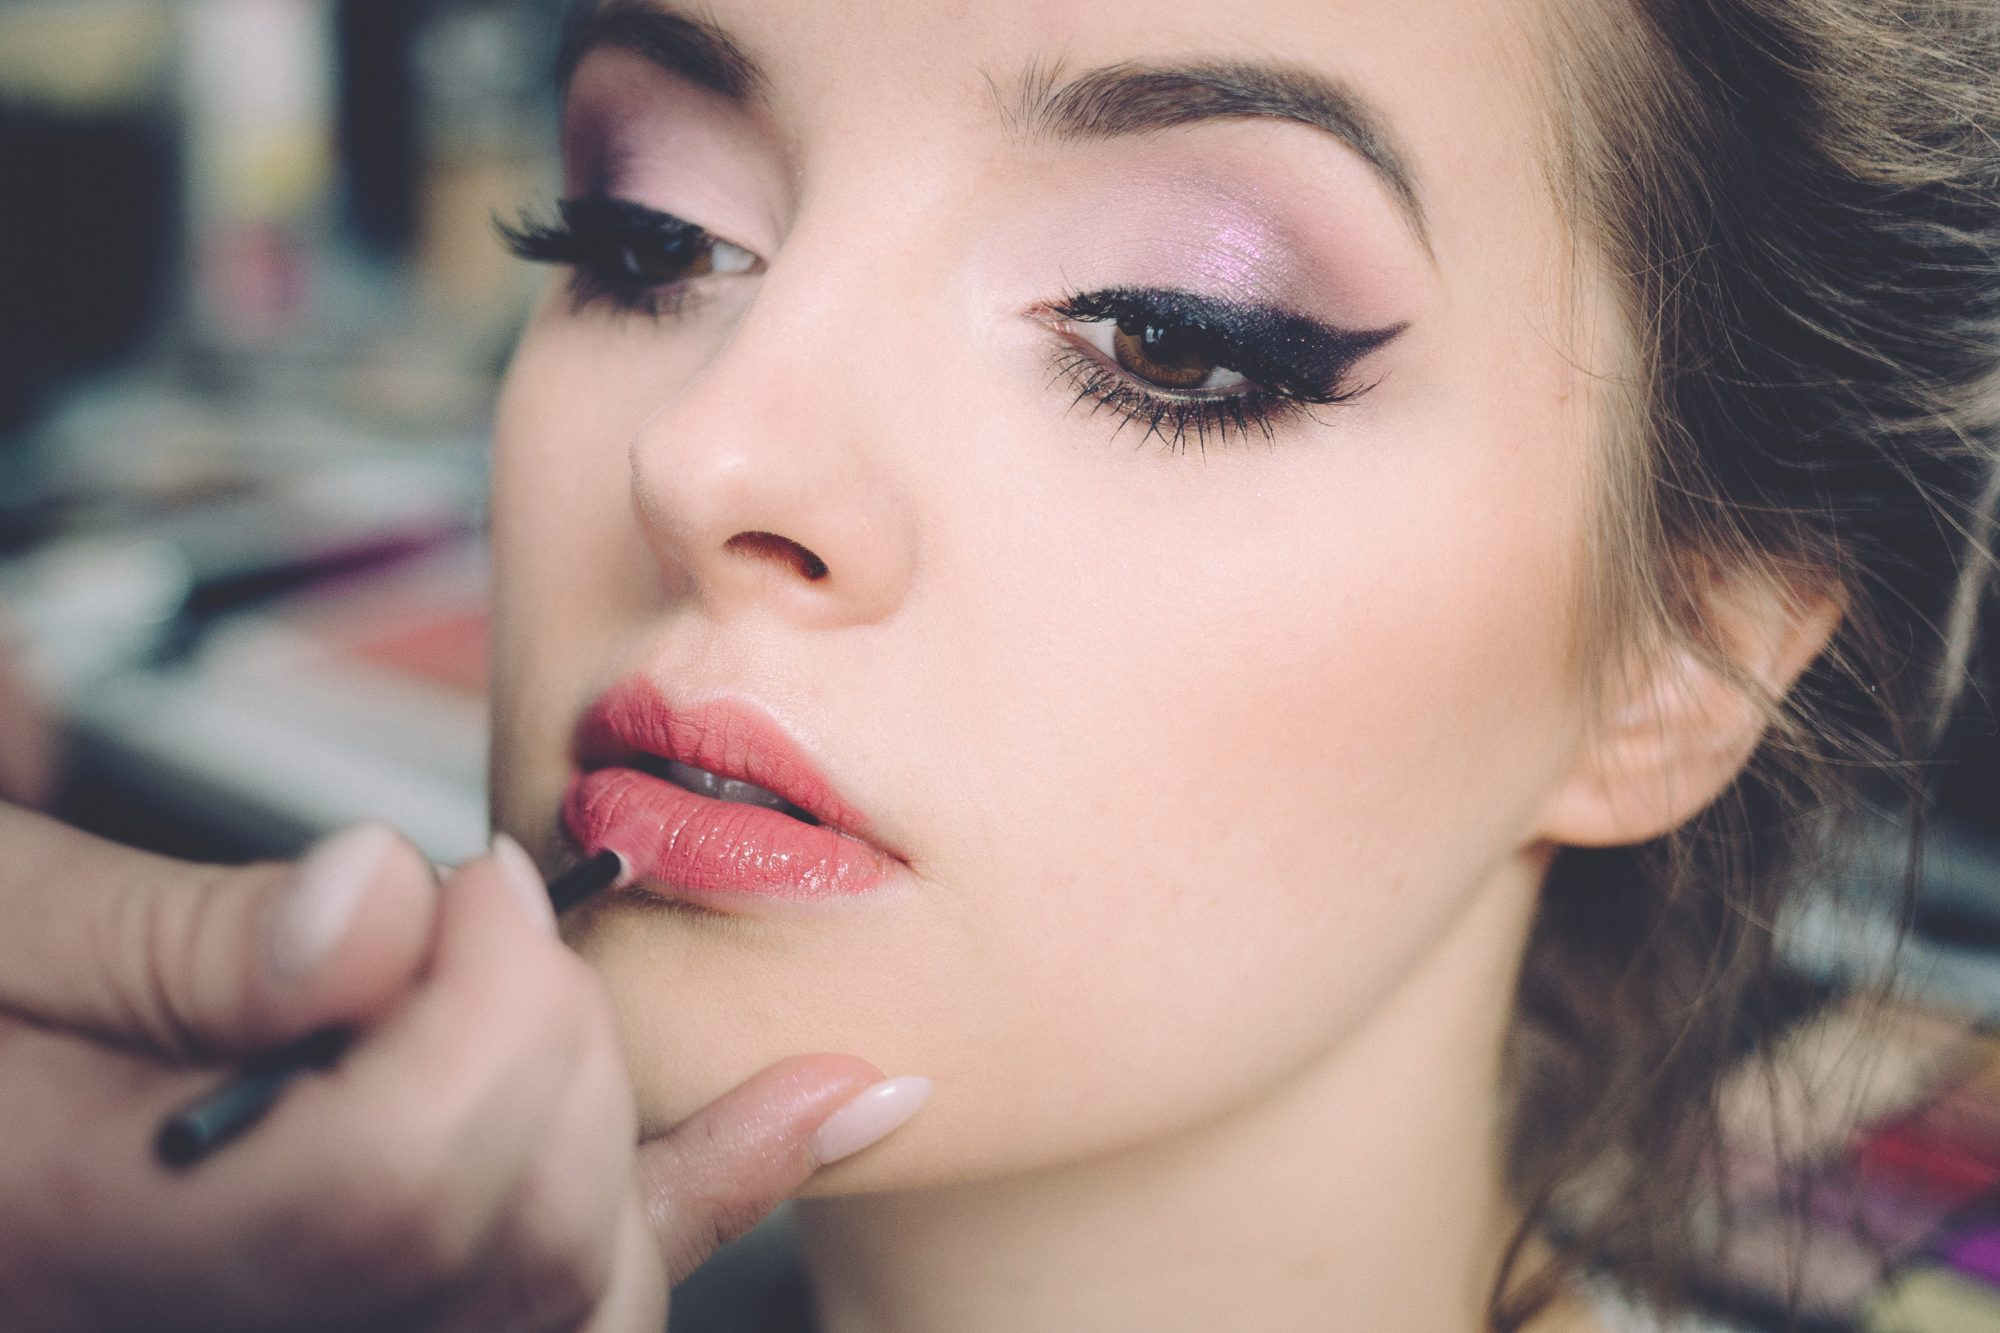 Too Much Makeup: The Psychology of Cosmetics